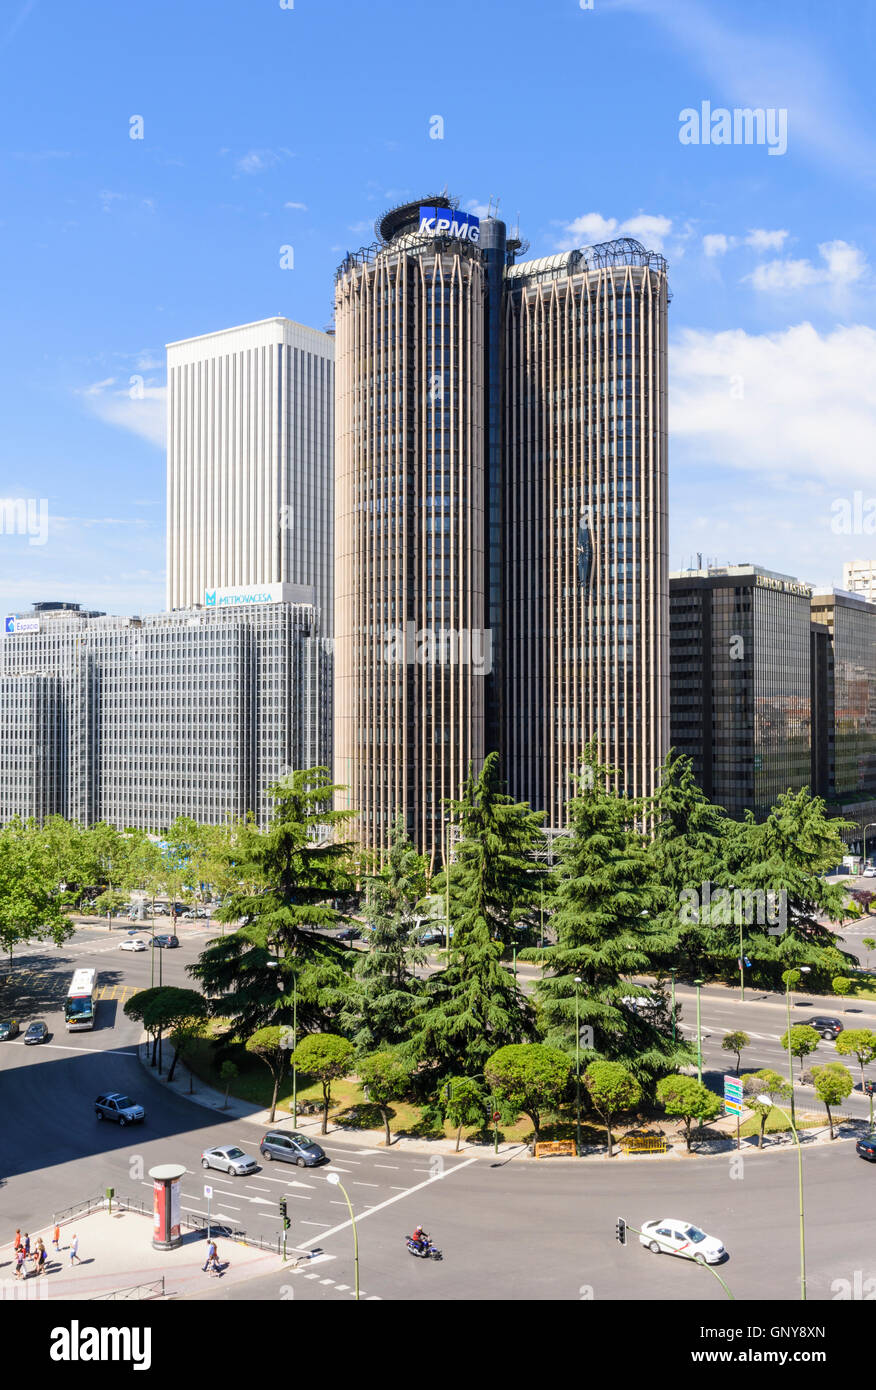 The Torre Europa skyscraper and Plaza de Lima in the financial district of Madrid, Spain - Stock Image